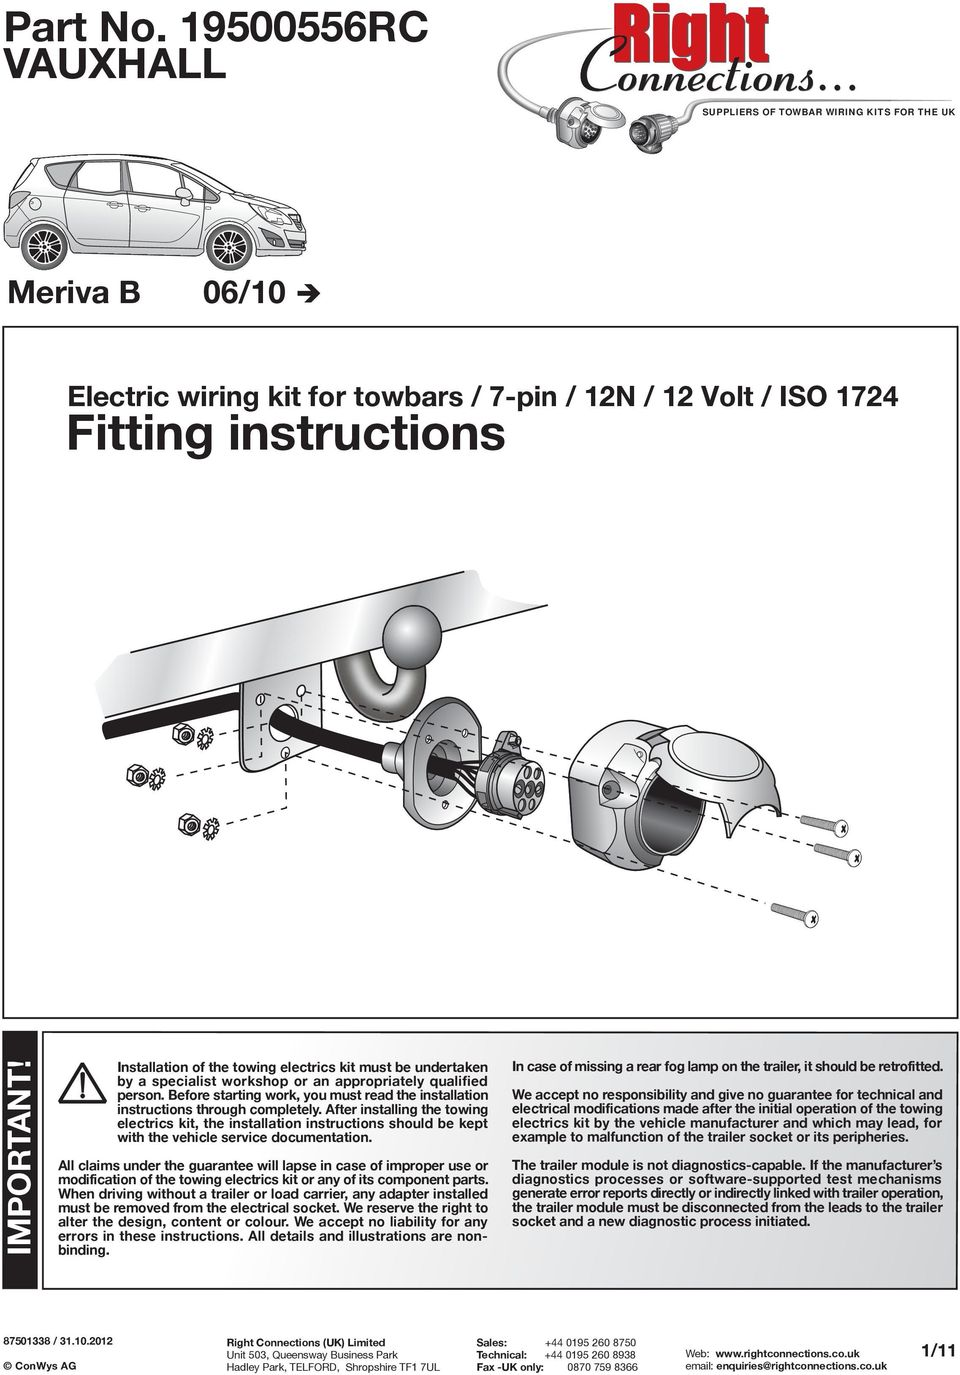 right connections fitting instructions